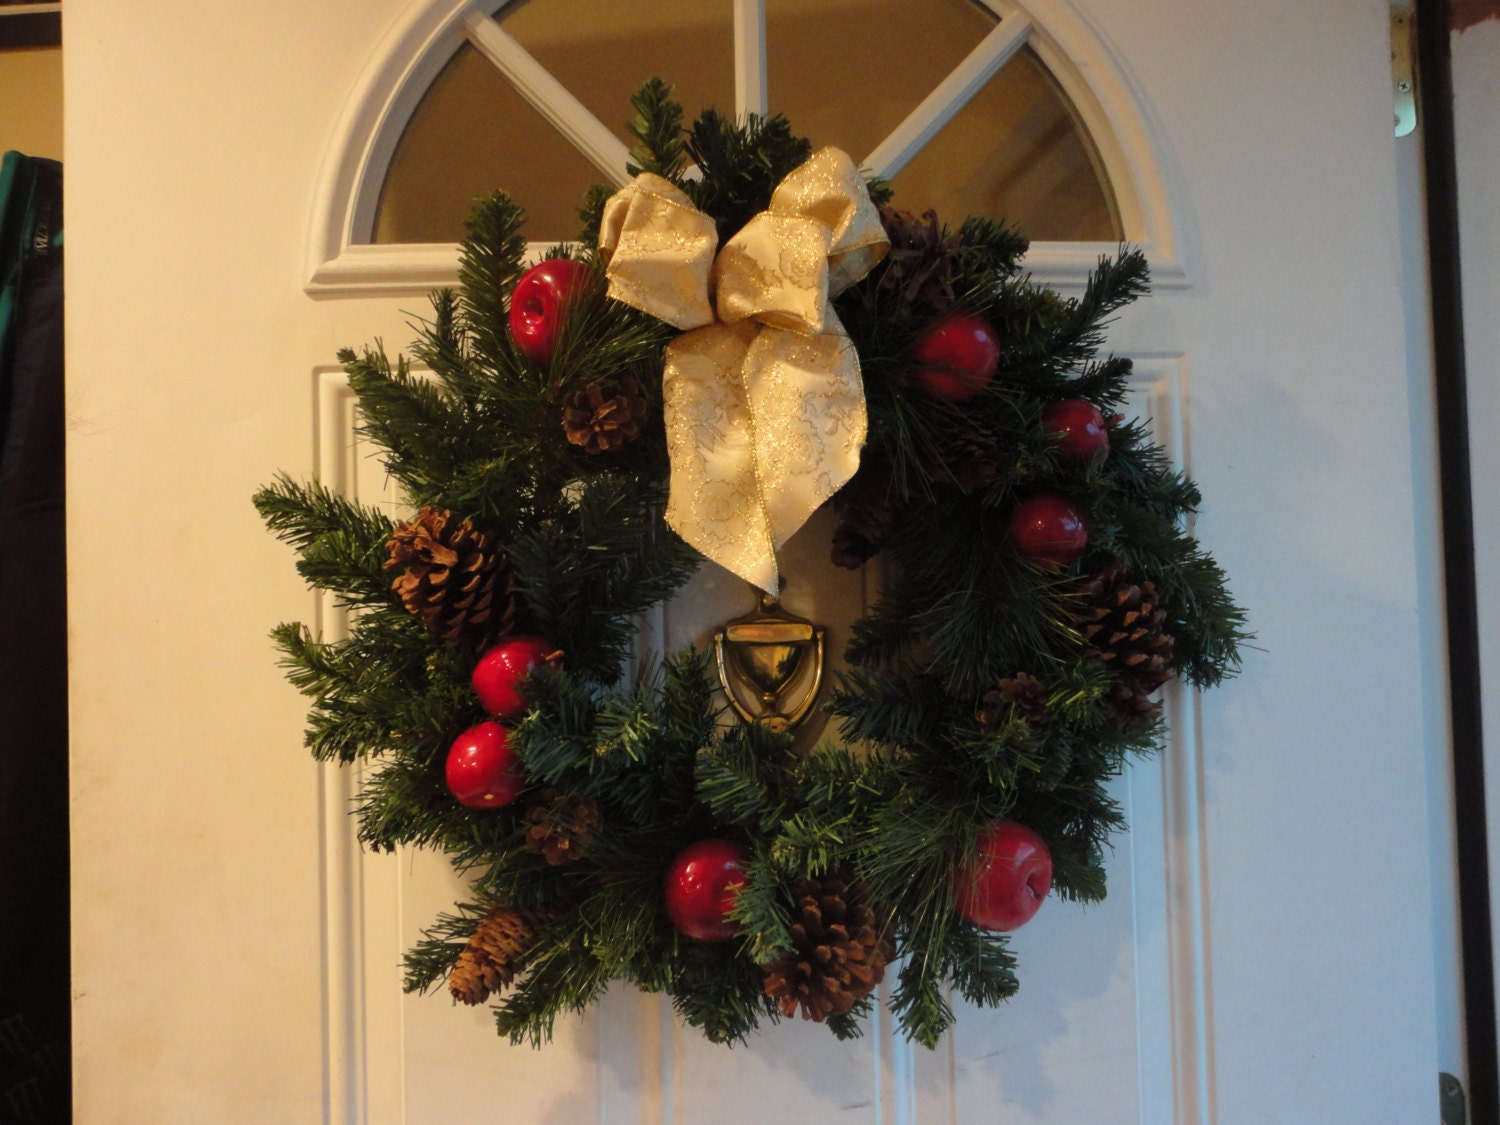 Large, bushy wreath with apples, pine cones and a large gold bow